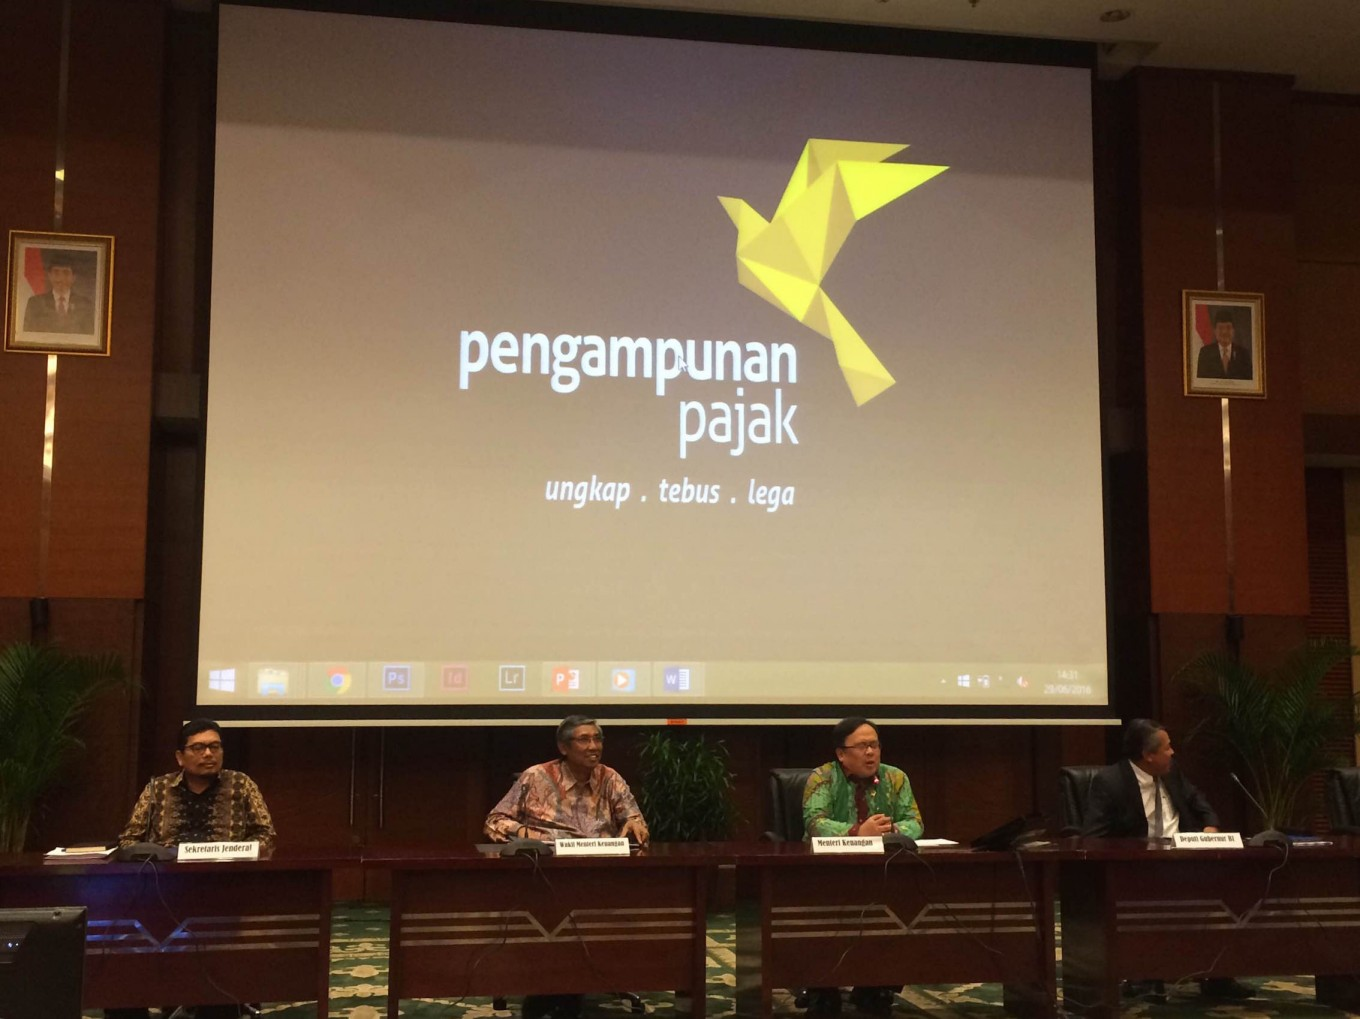 Govt Launches Campaign Logo For Tax Amnesty Business The Jakarta Post